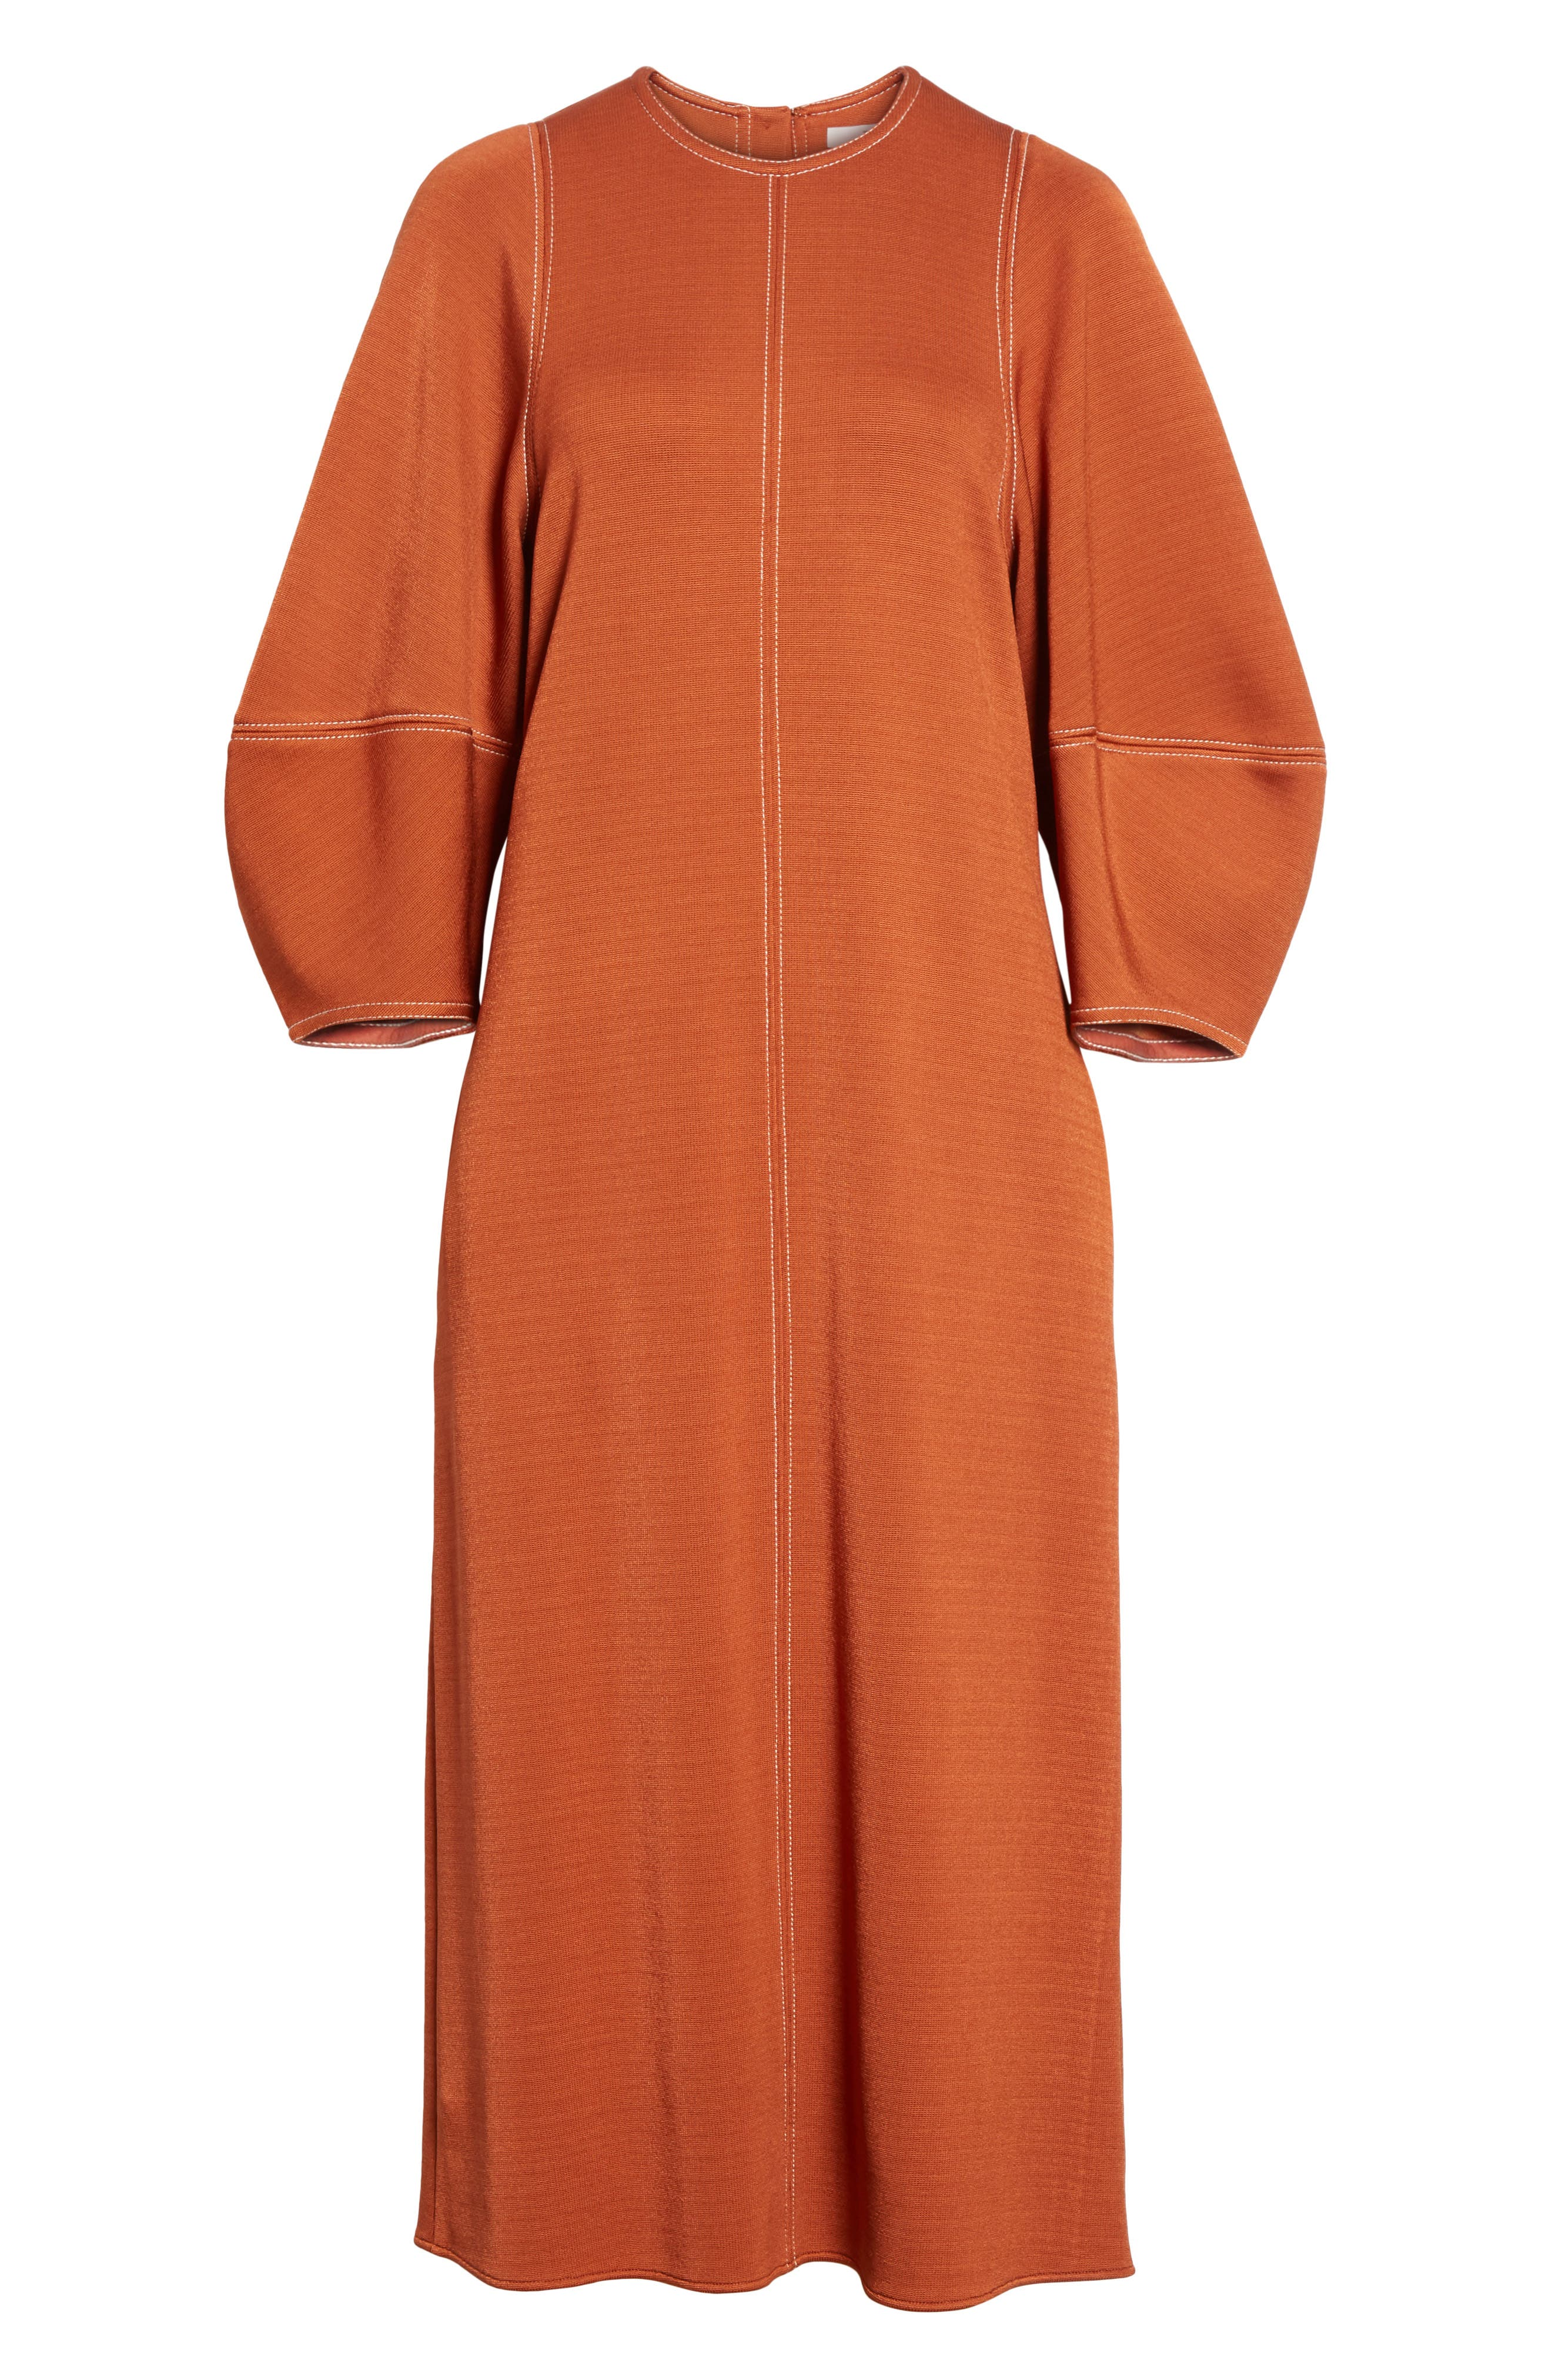 Balloon Sleeve Crepe Knit Midi Dress,                             Alternate thumbnail 6, color,                             Rust